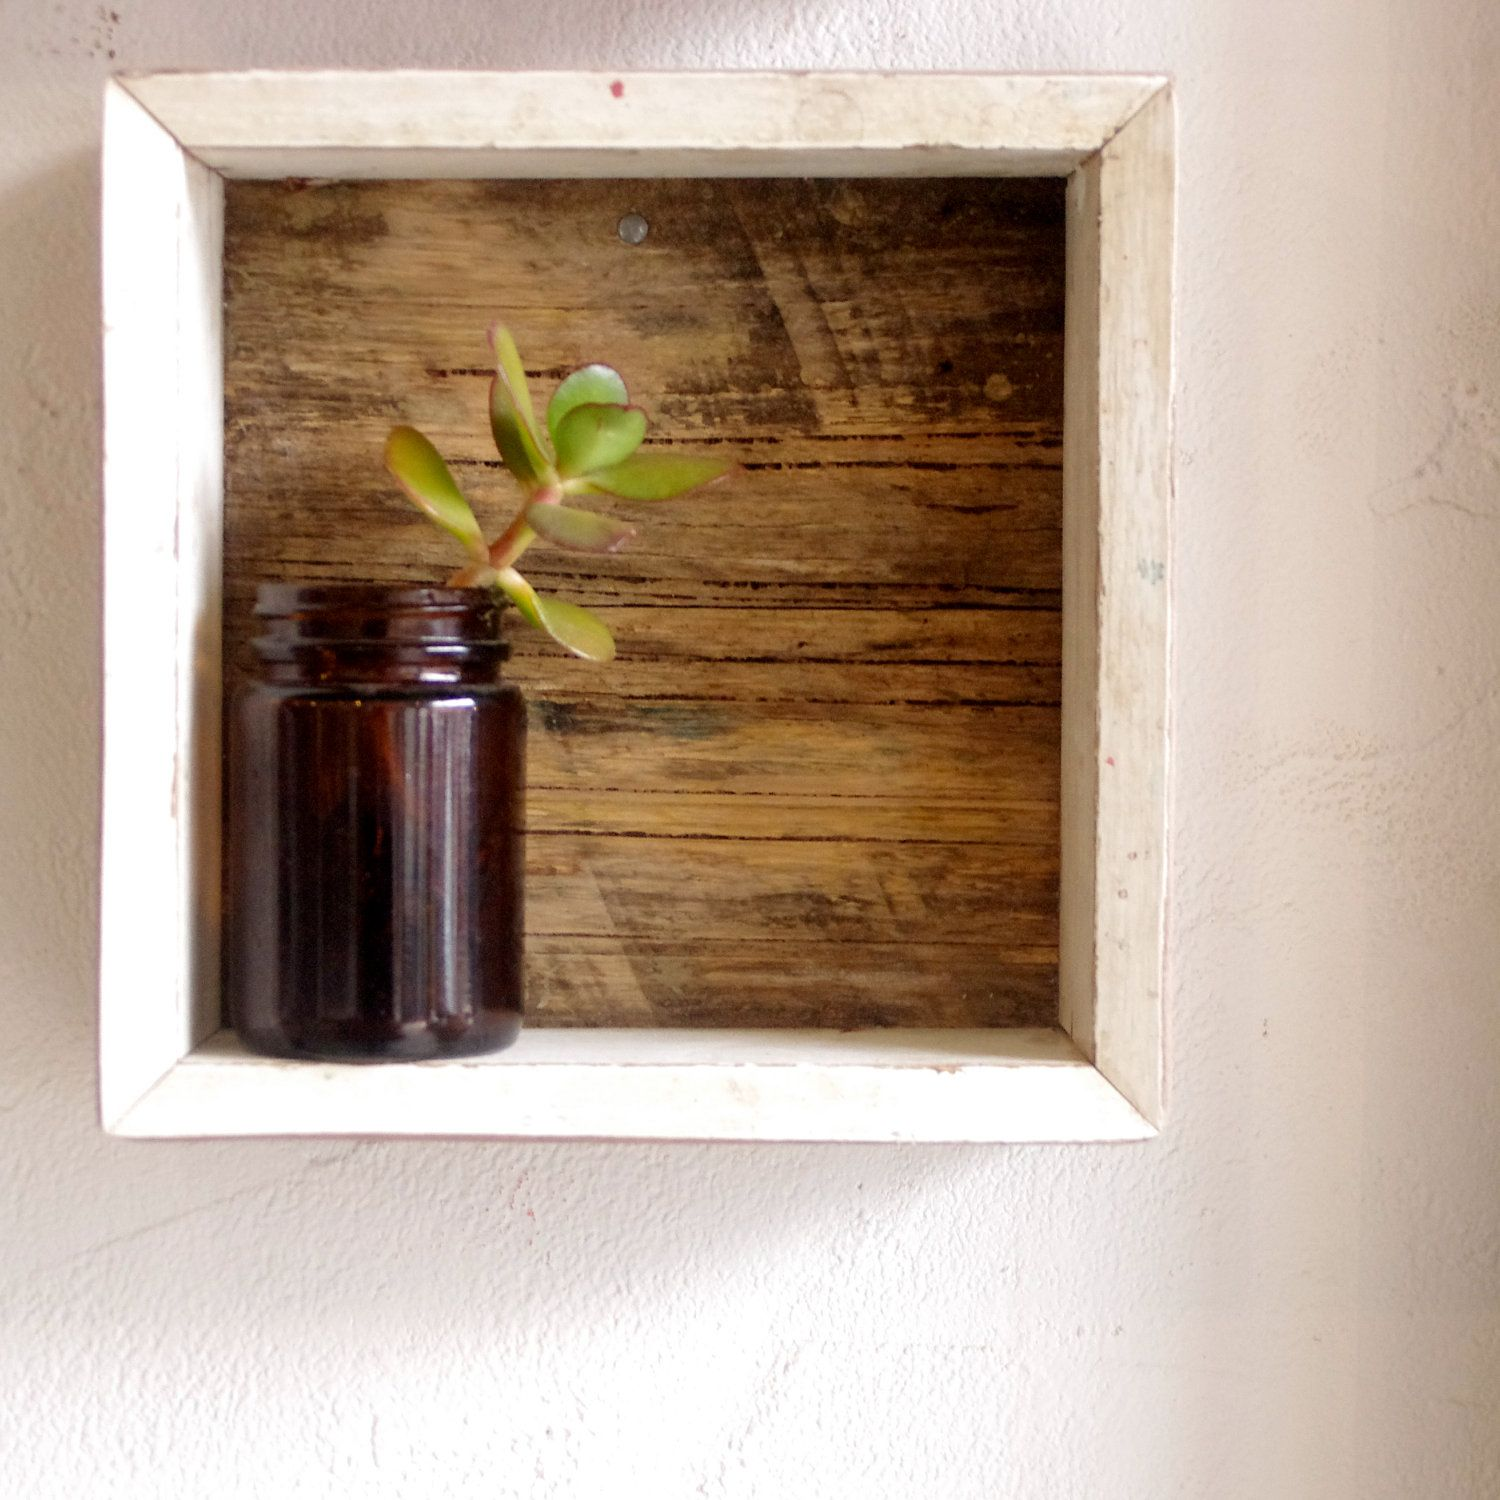 Reclaimed Timber Frame Shadow Box Rustic Wooden Display Case Home Decor With Images Timber Frame Decor Diy Shadow Box Wooden Display Cases